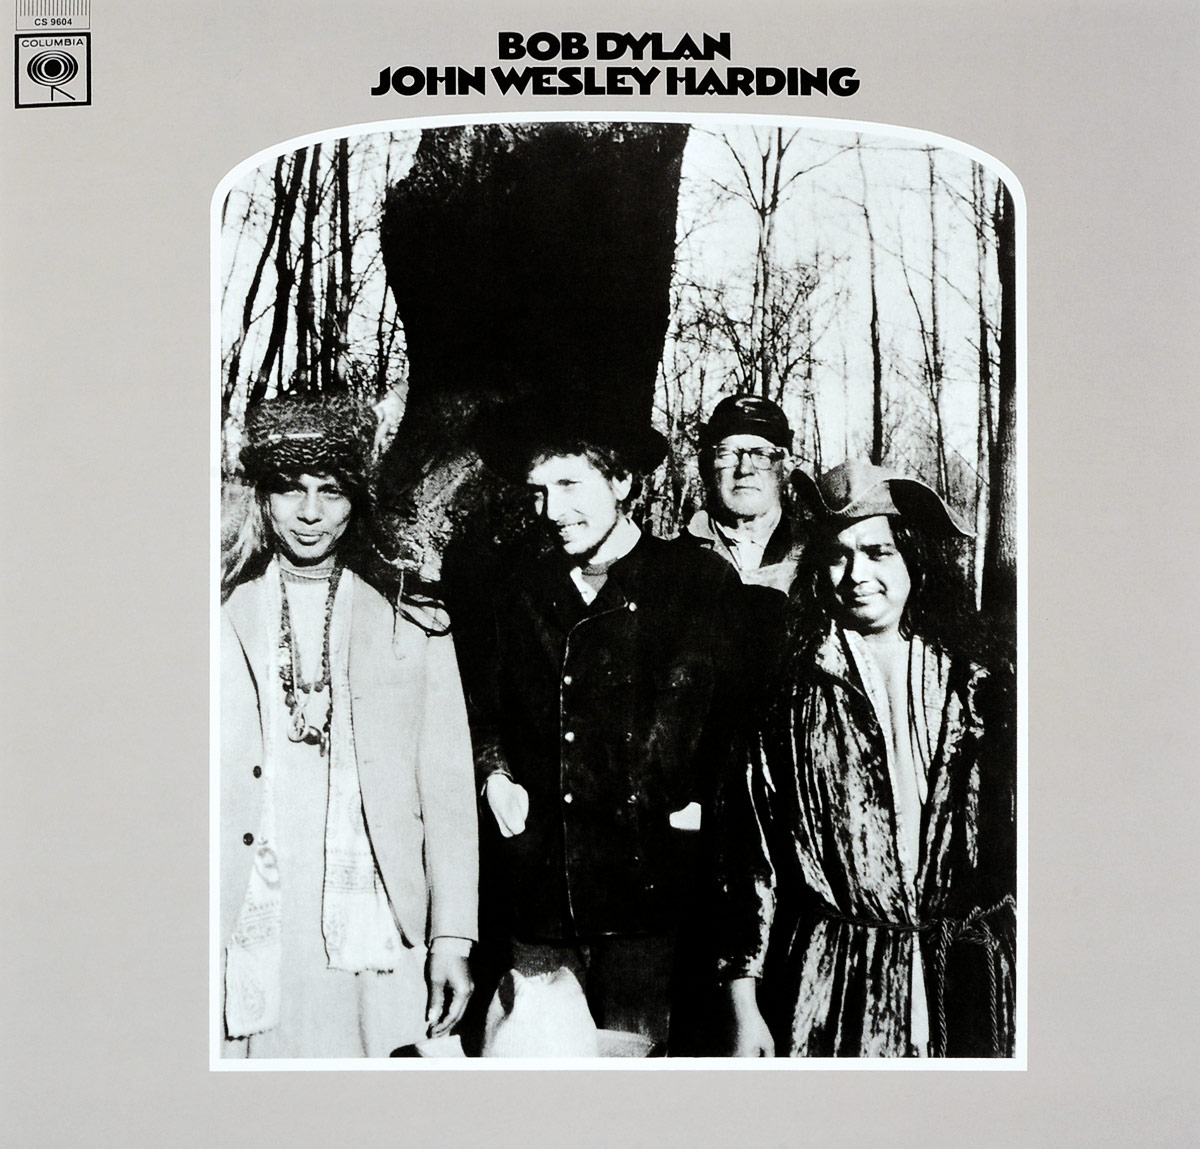 Боб Дилан Bob Dylan. John Wesley. Harding. 2010 Mono Version (LP) боб дилан dylan bob another side of bob dylan lp